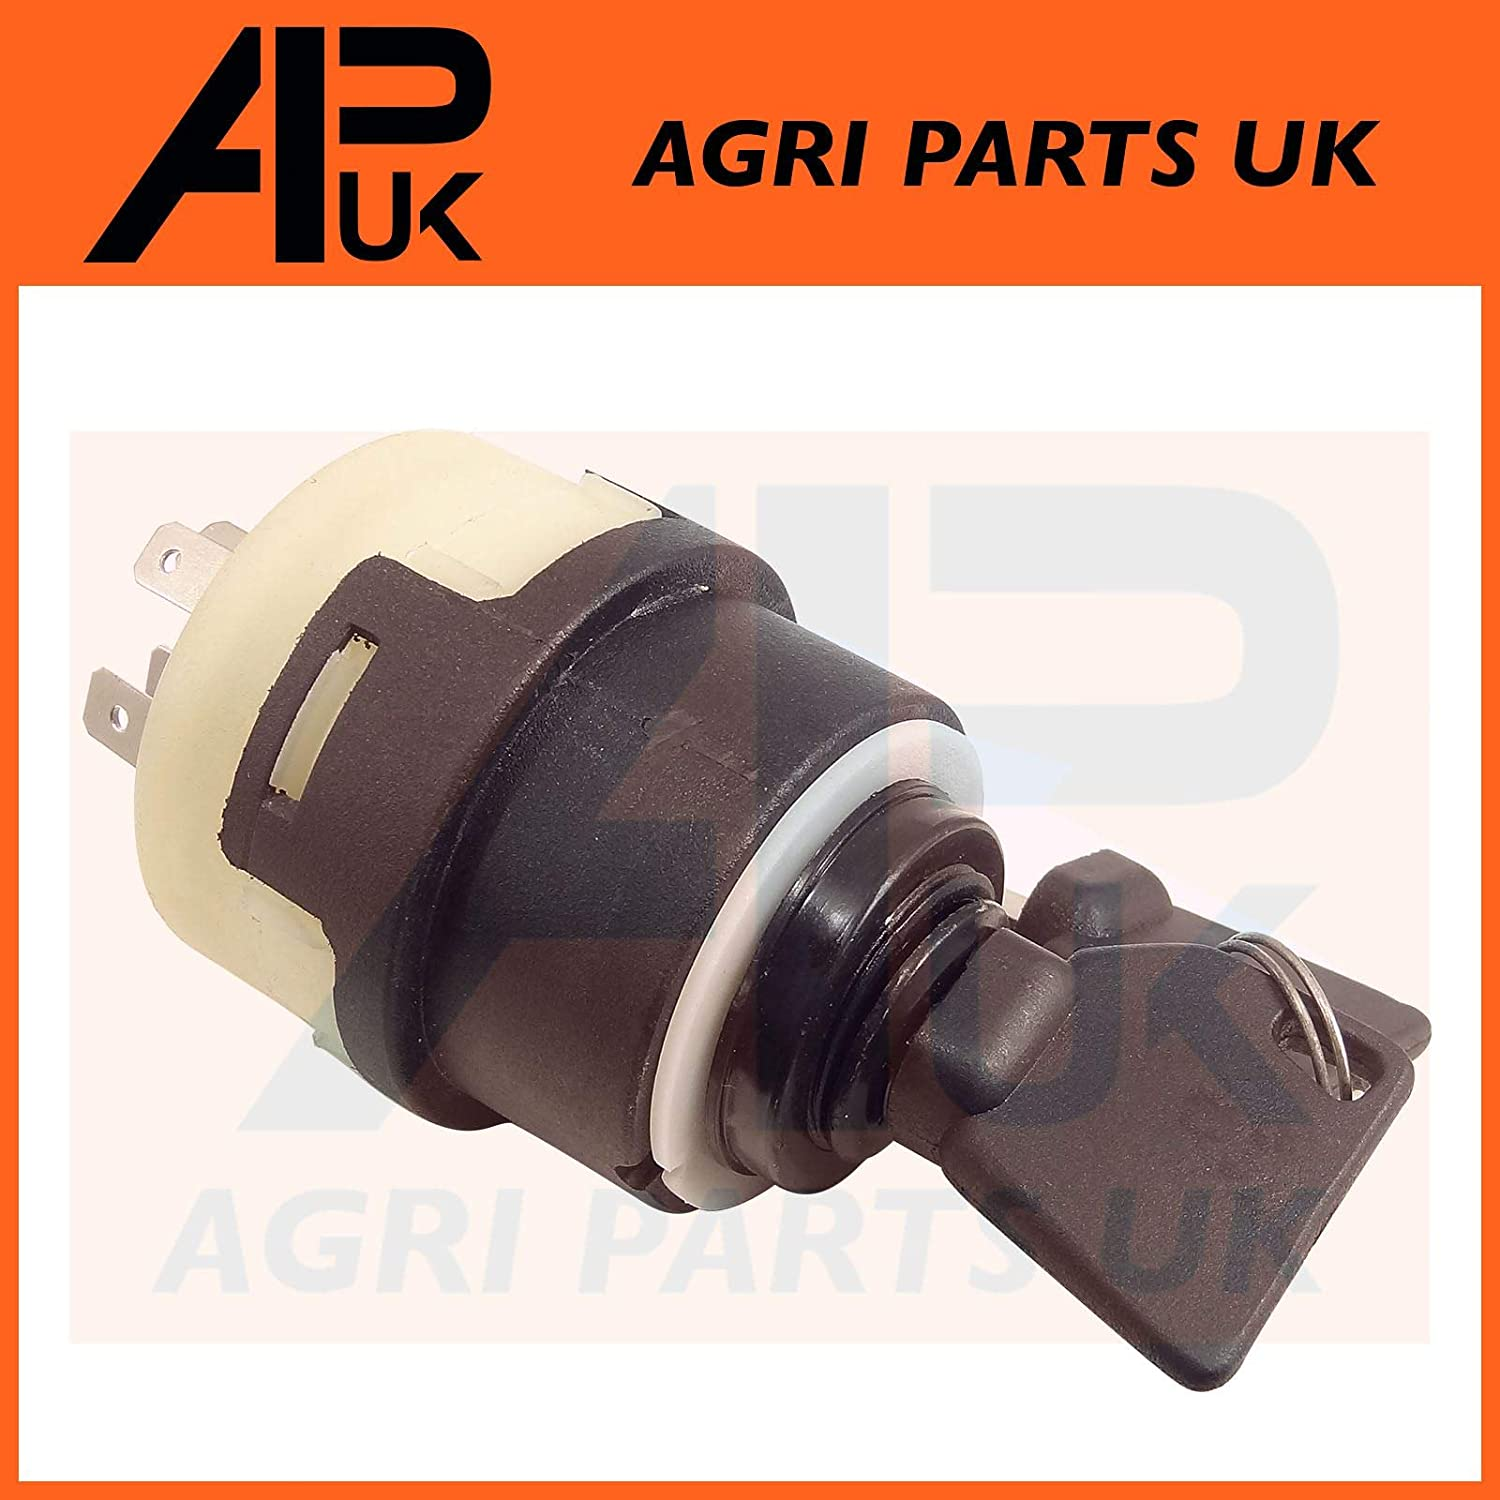 APUK Ignition Starter Switch fits Case International IH 3220 3230 4210 4220 4230 Tractor